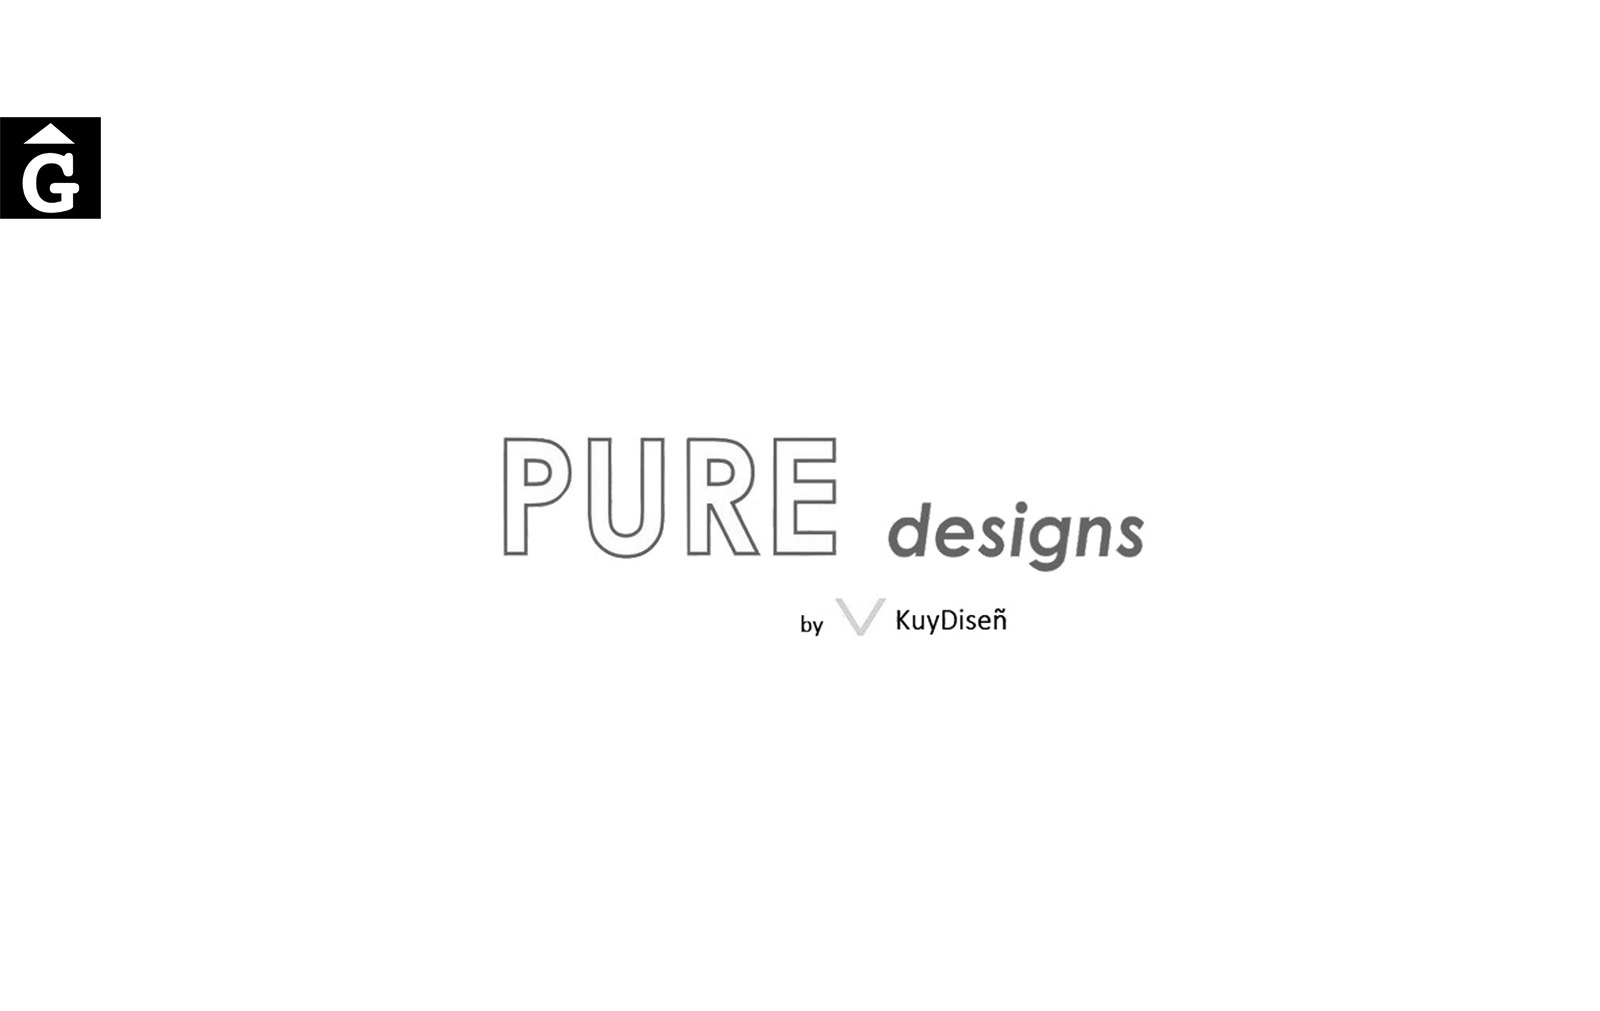 Pure design logo blanc negre Categories Marques per mobles Gifreu